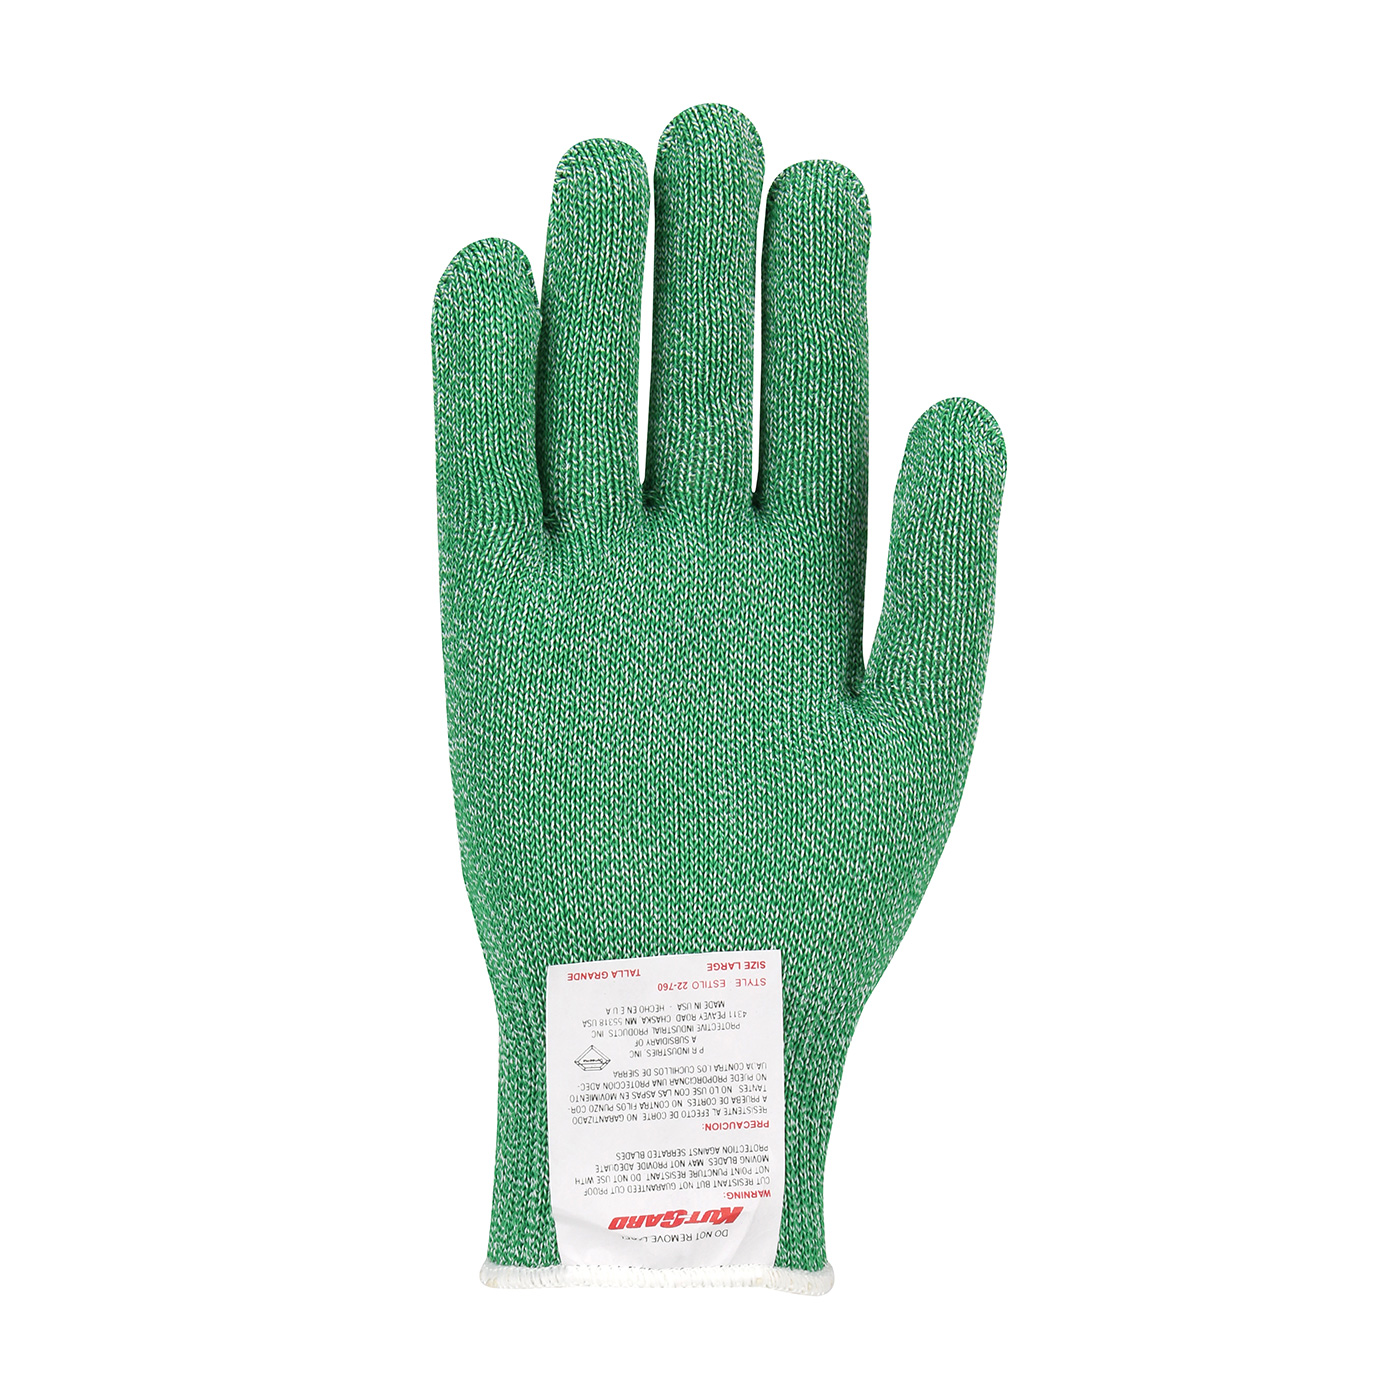 #22-760GRN PIP Green Kut-Gard® Dyneema® Blended Cut Level A7 Antimicrobial Glove - Medium Weight